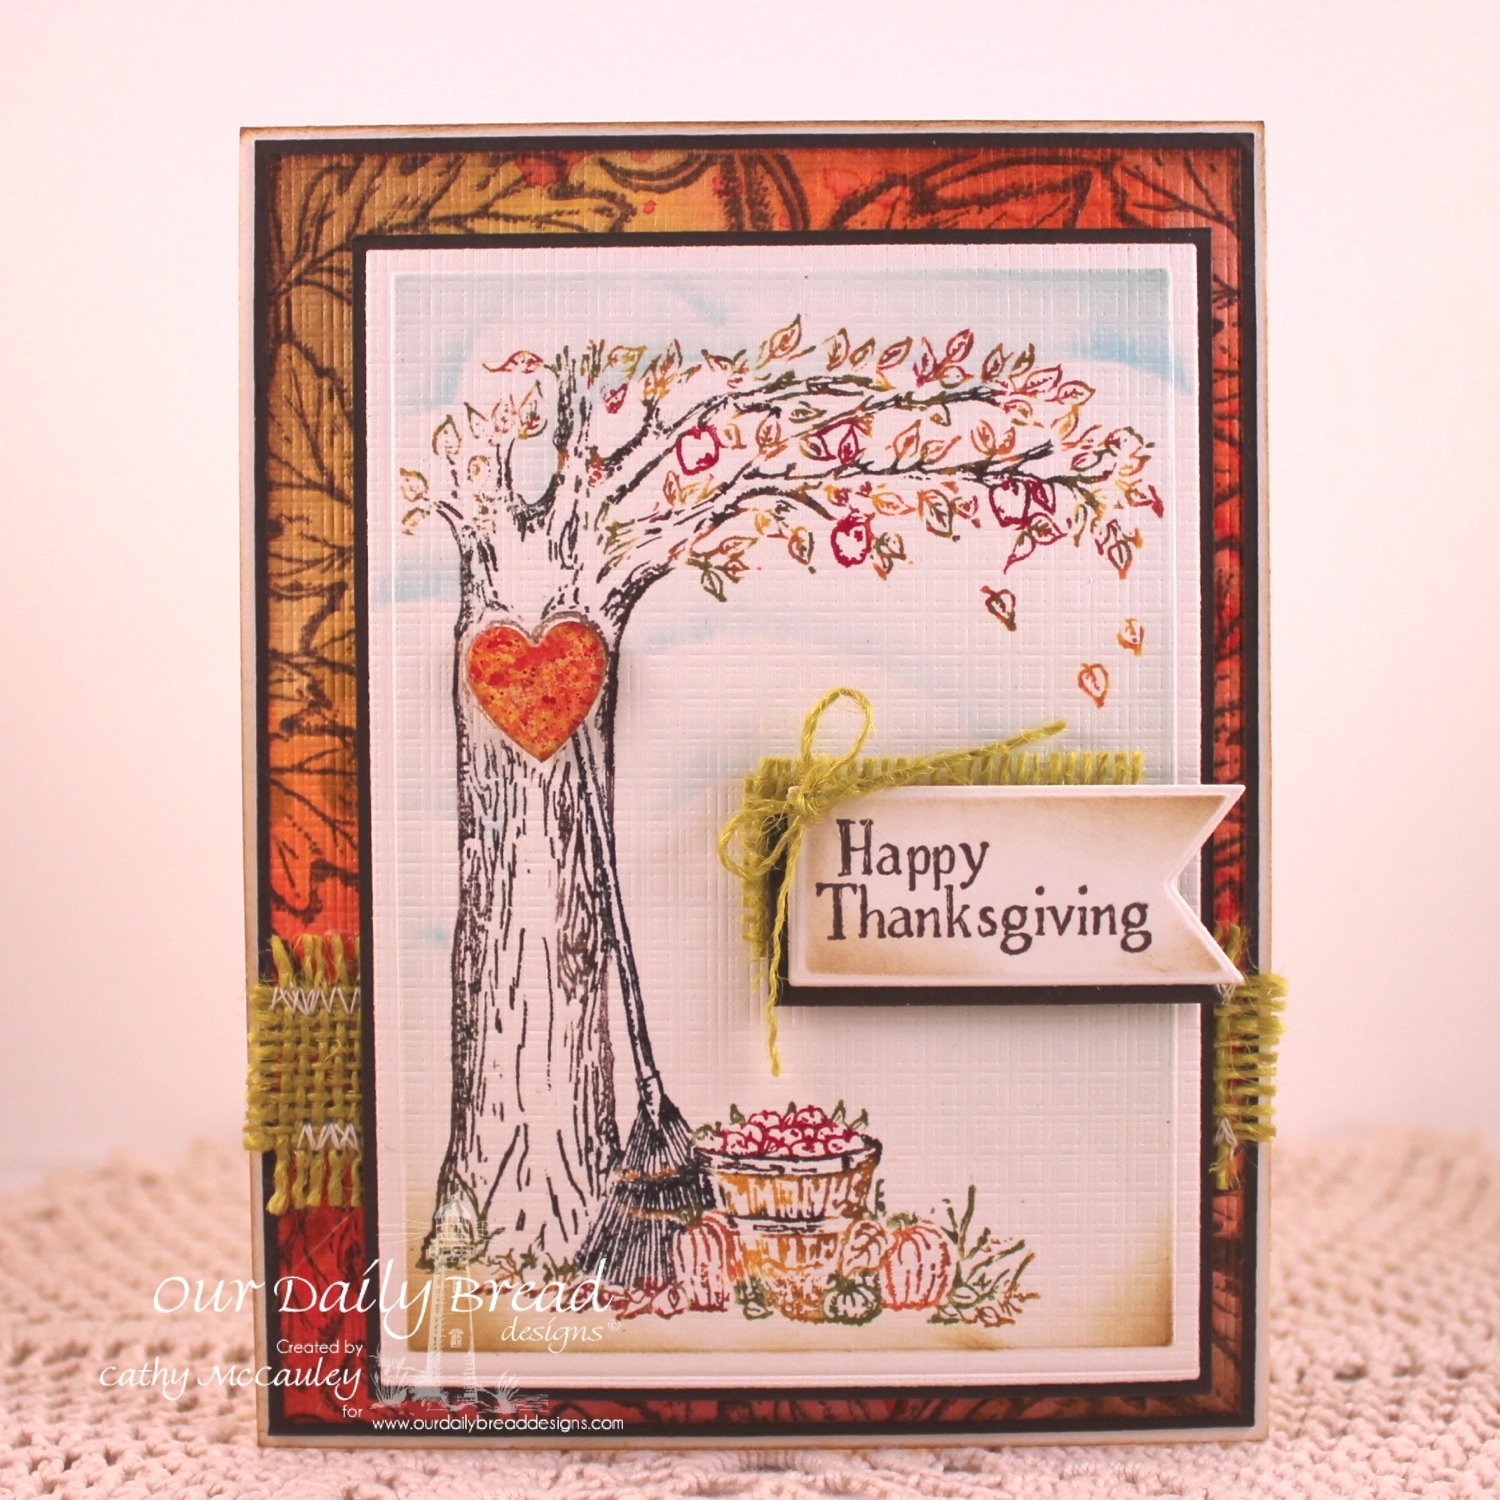 Stamps - Our Daily Bread Designs Autumn Tree, Autumn Blessings, ODBD Custom Pennants Dies